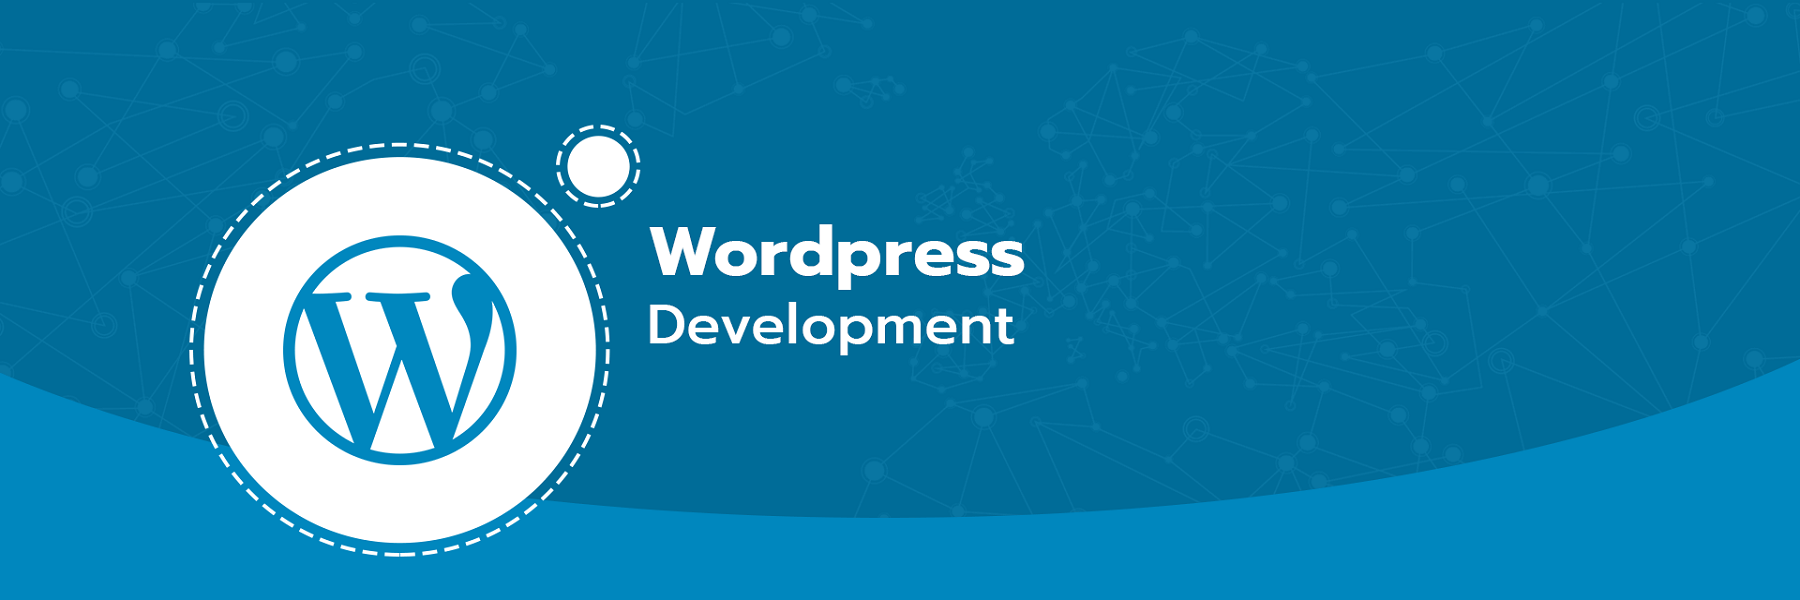 HOW TO CHOOSE THE BEST WORDPRESS DEVELOPMENT COMPANY?